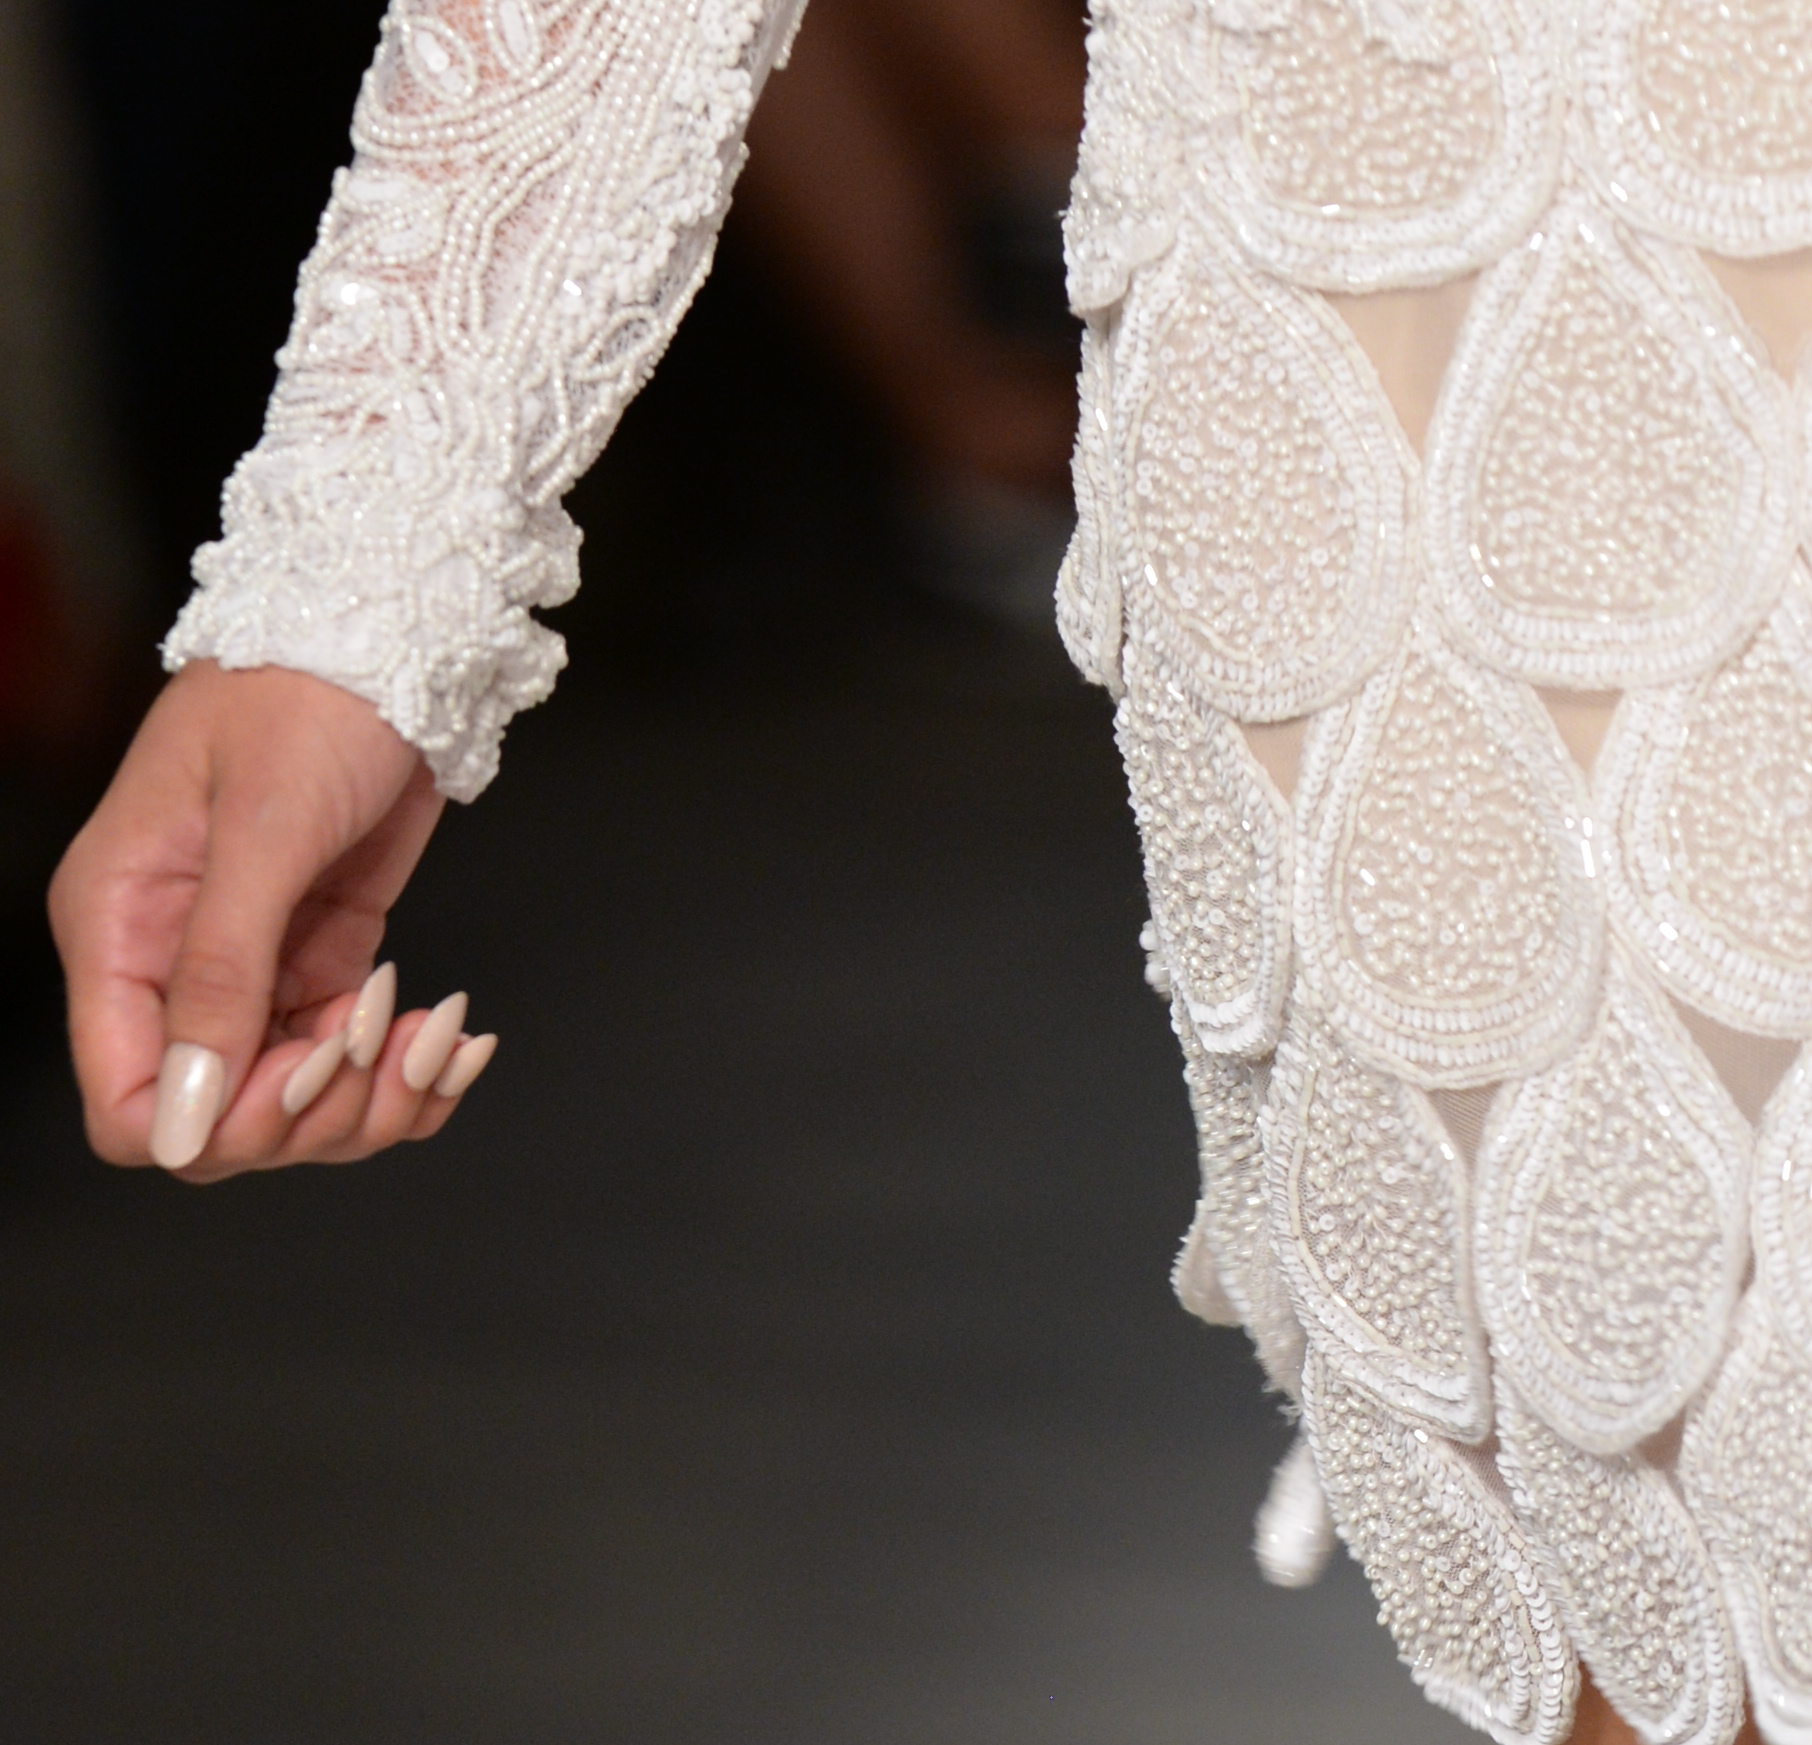 Spring 2015 Nail Trends From New York Fashion Week - Fashionably Austin